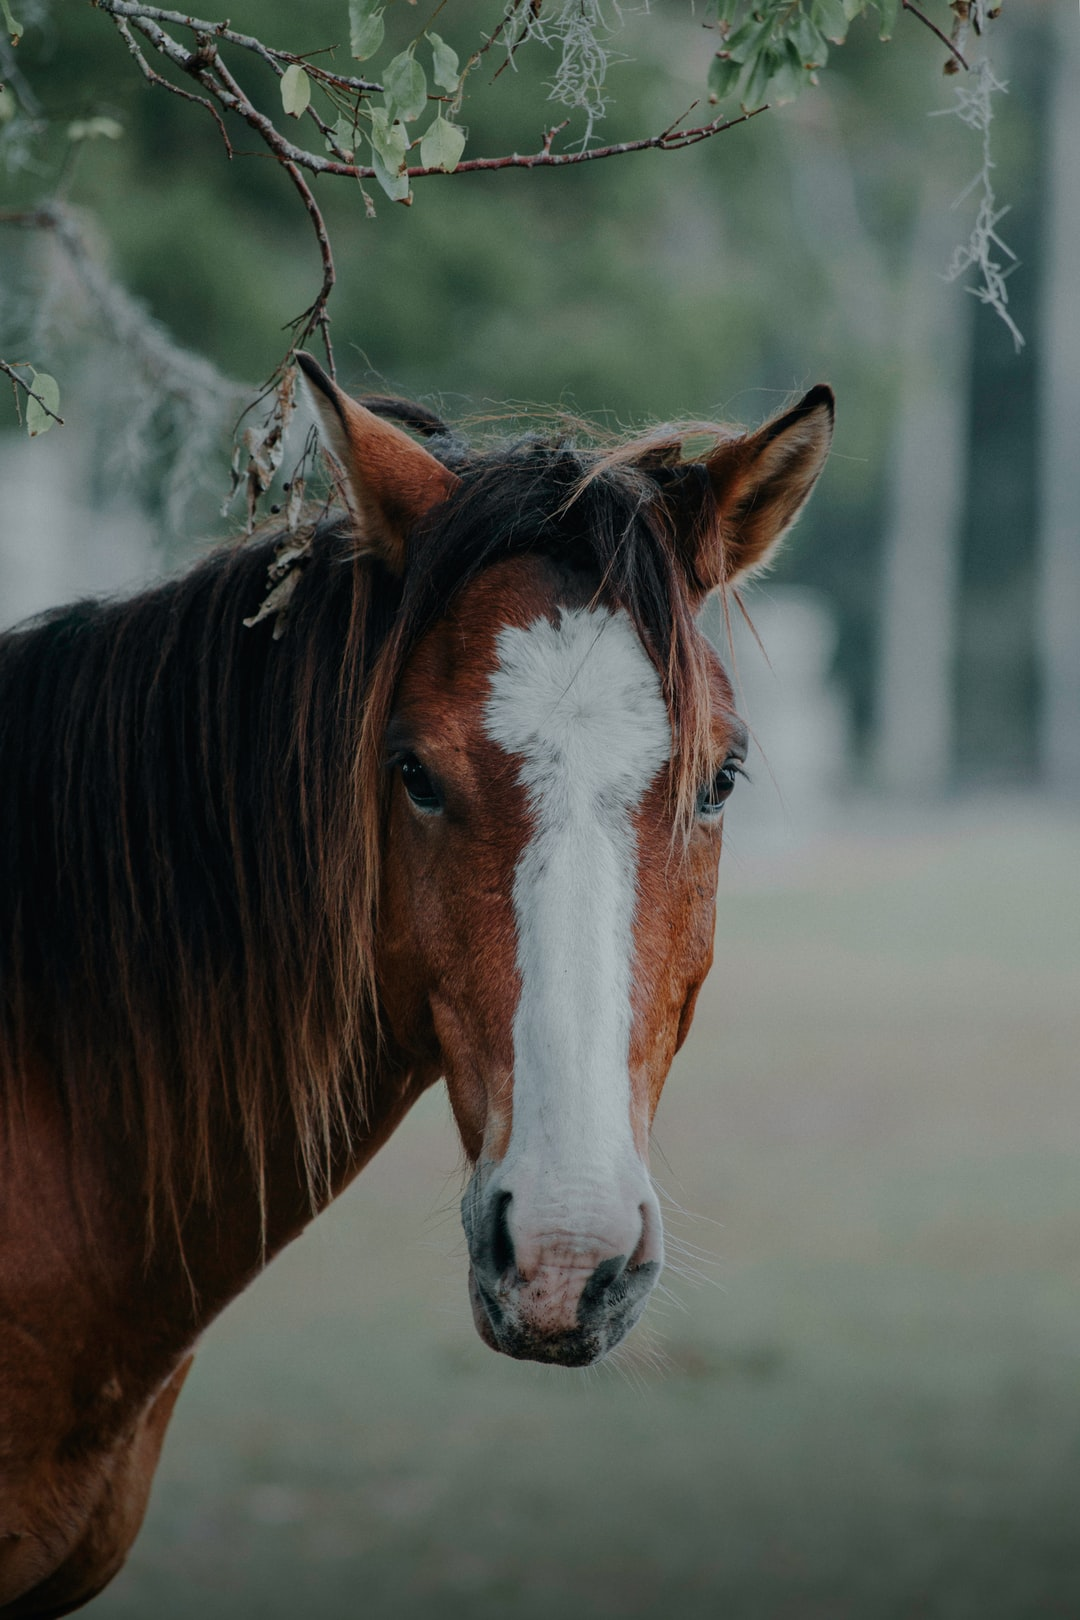 Why Don't Wild Horses Need Their Hooves Trimmed?